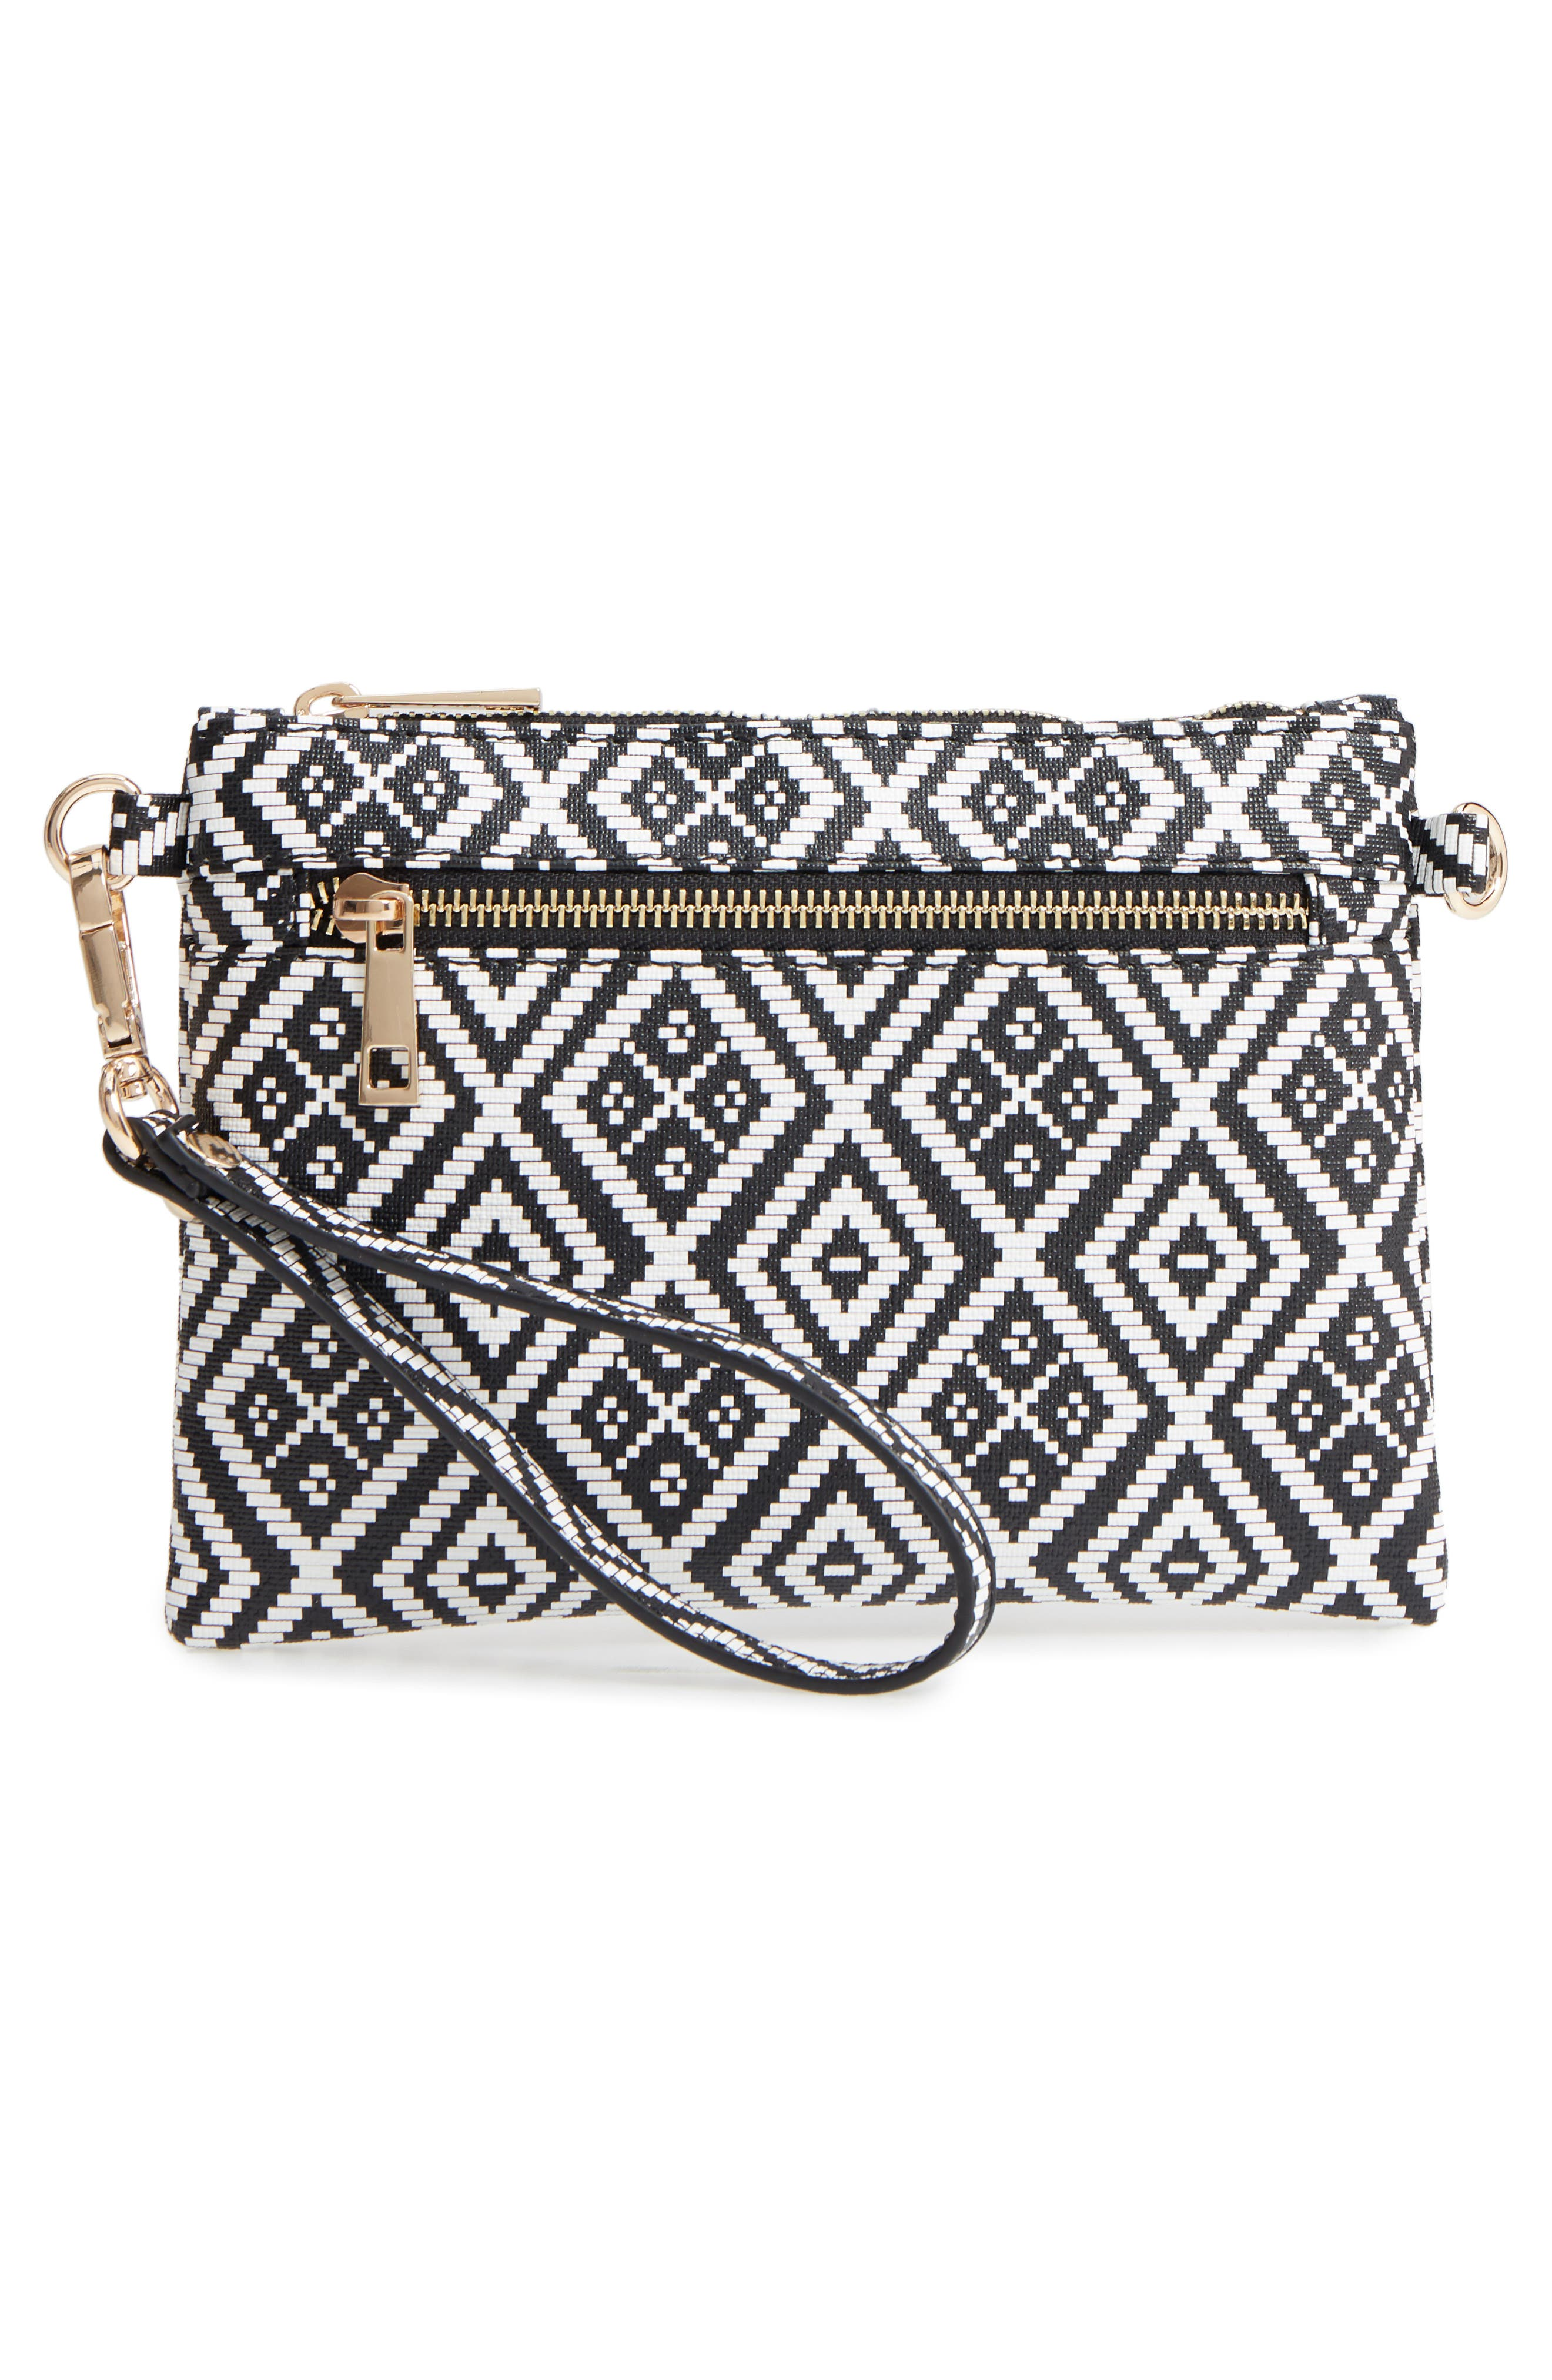 Weave Pattern Convertible Crossbody Wristlet,                             Alternate thumbnail 3, color,                             001